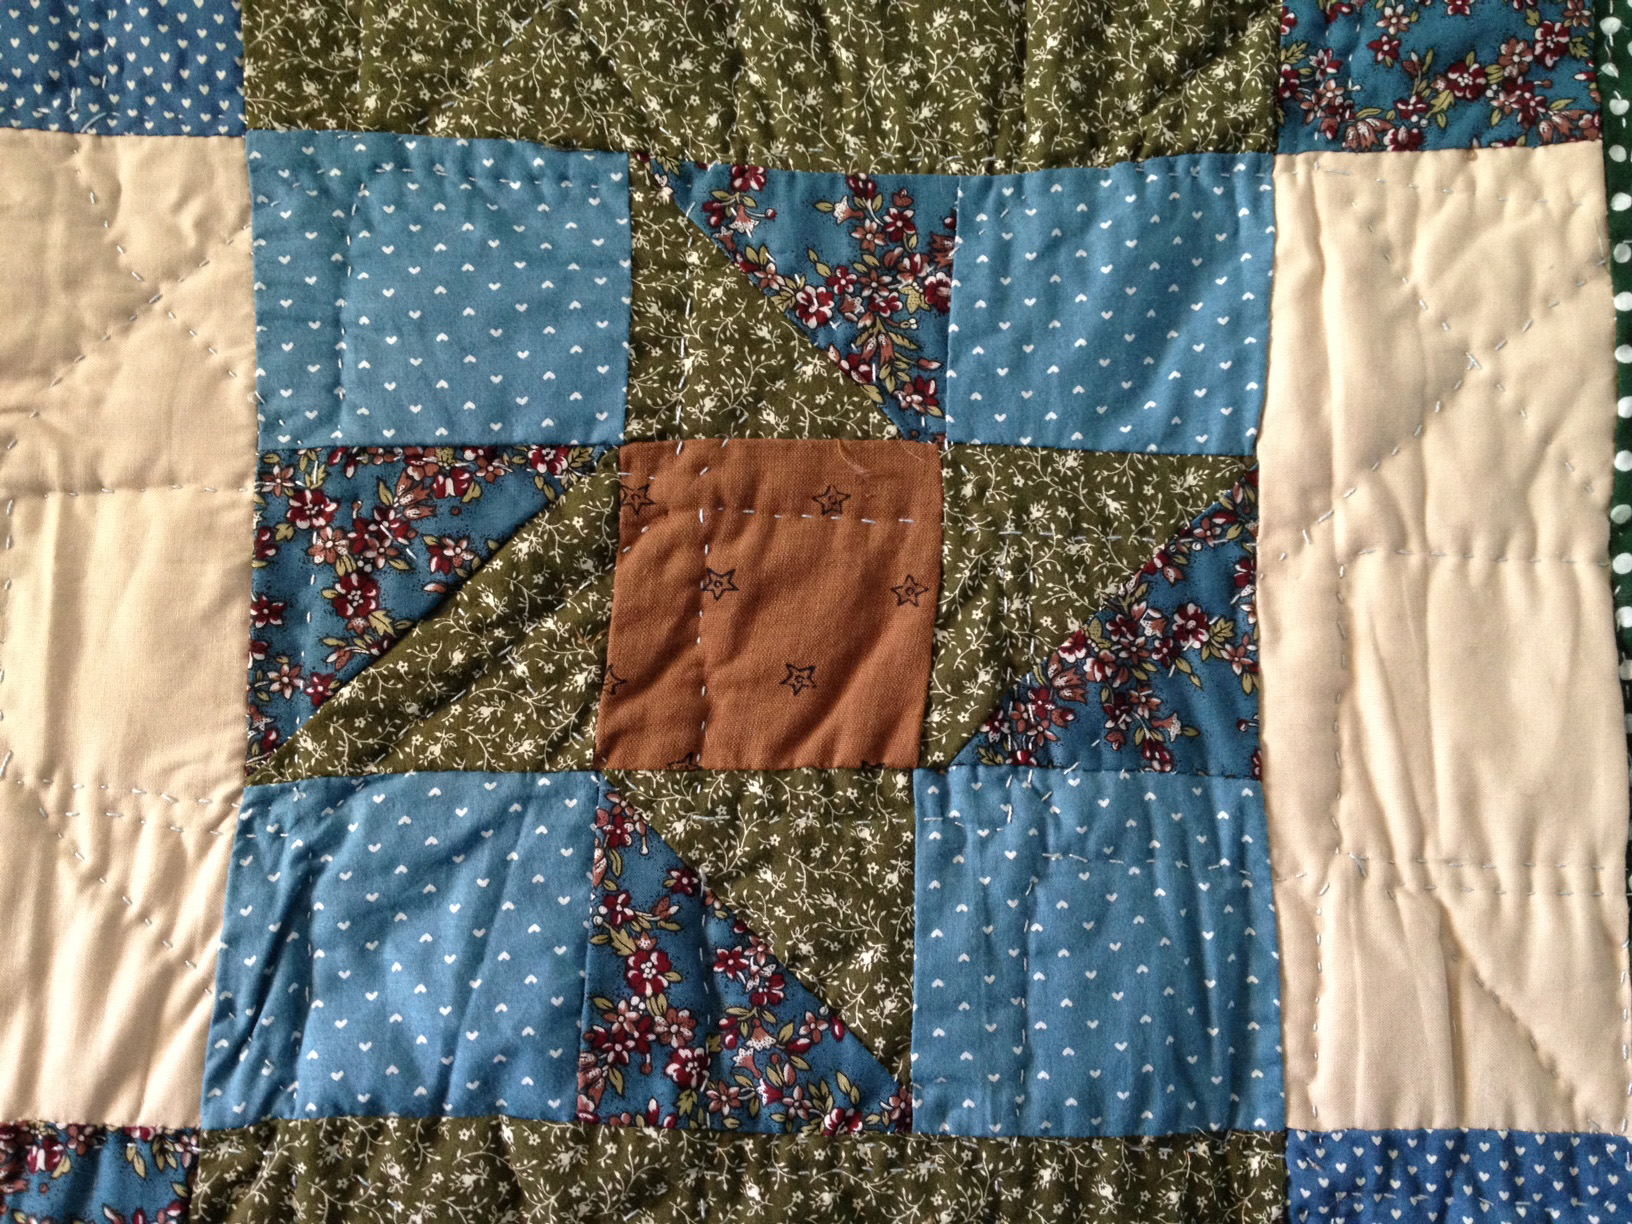 The quilting on the back doesn't match up with the back star, but still makes for an interesting design.